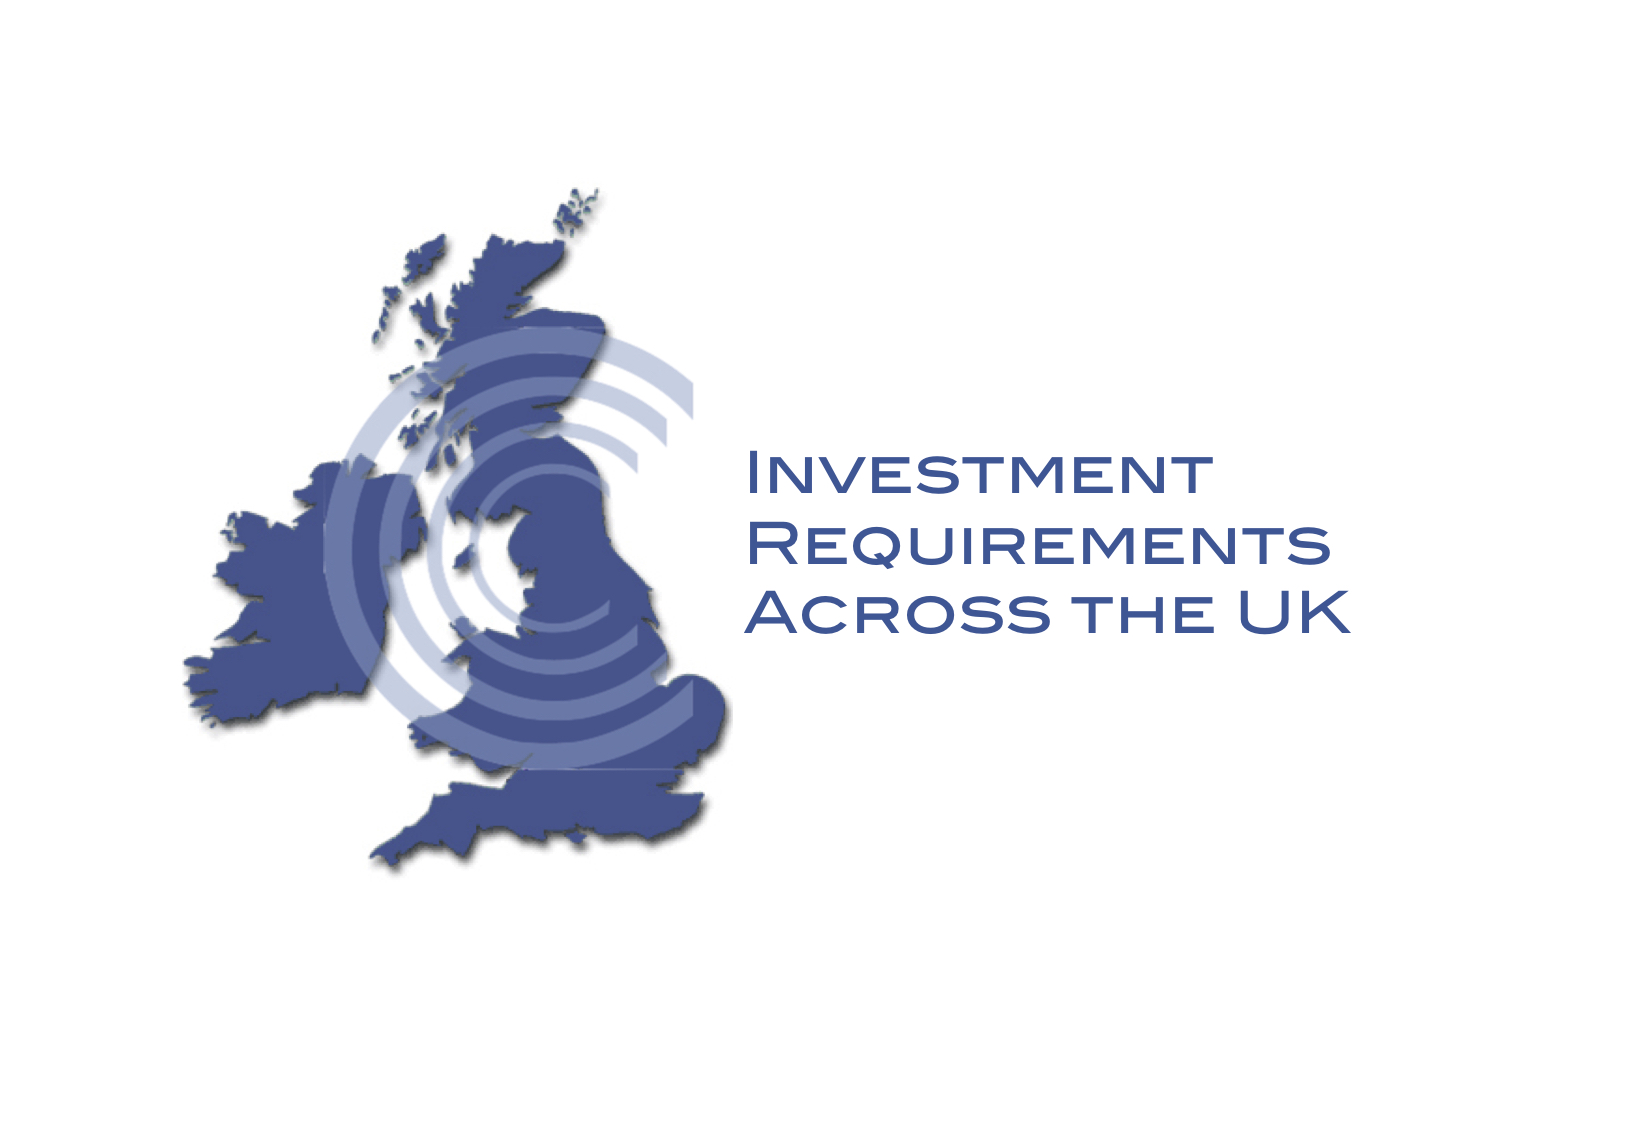 Investment Requirements across the UK